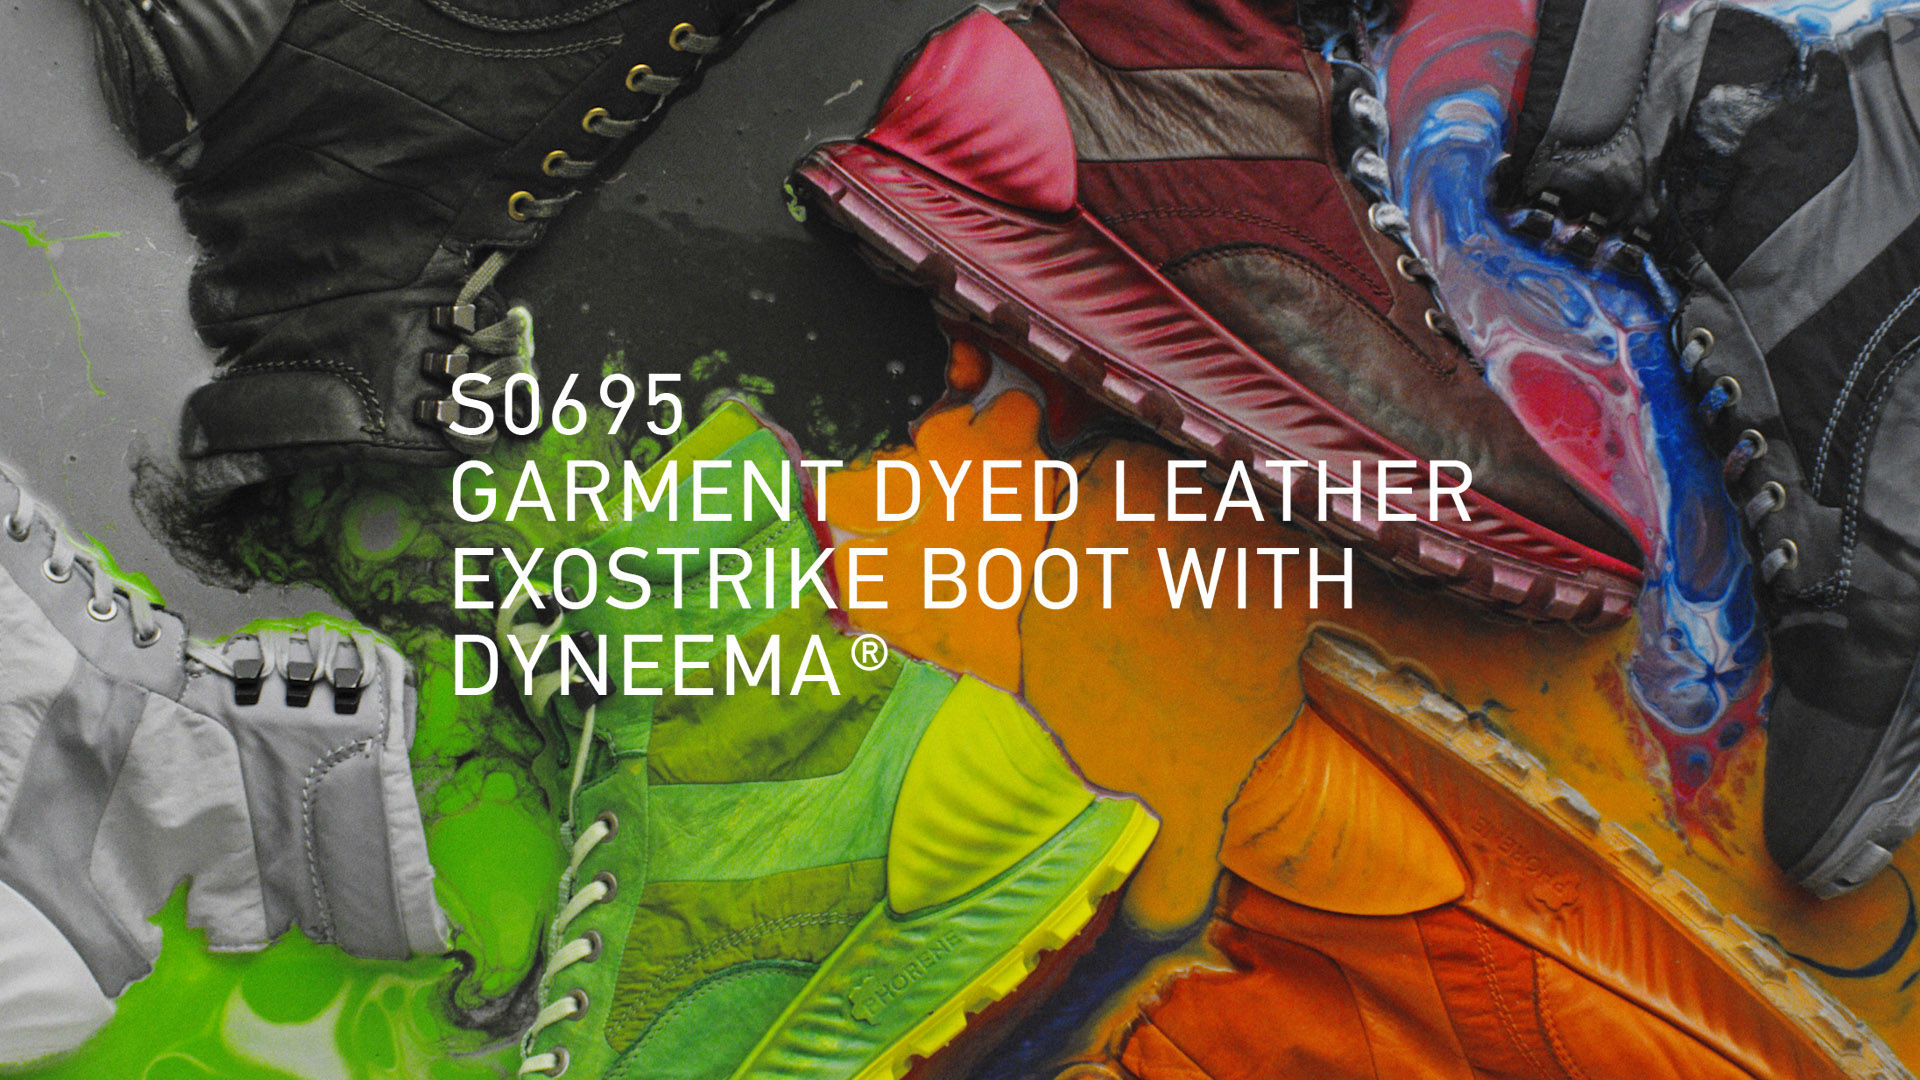 Black, red, dark grey, orange, green, and light grey rugged lace up ankle boots lying in puddles of multicolored paint, with collection title overlay in white font reading S0695 GARMENT DYED LEATHER EXOSTRIKE BOOT WITH DYNEEMA®